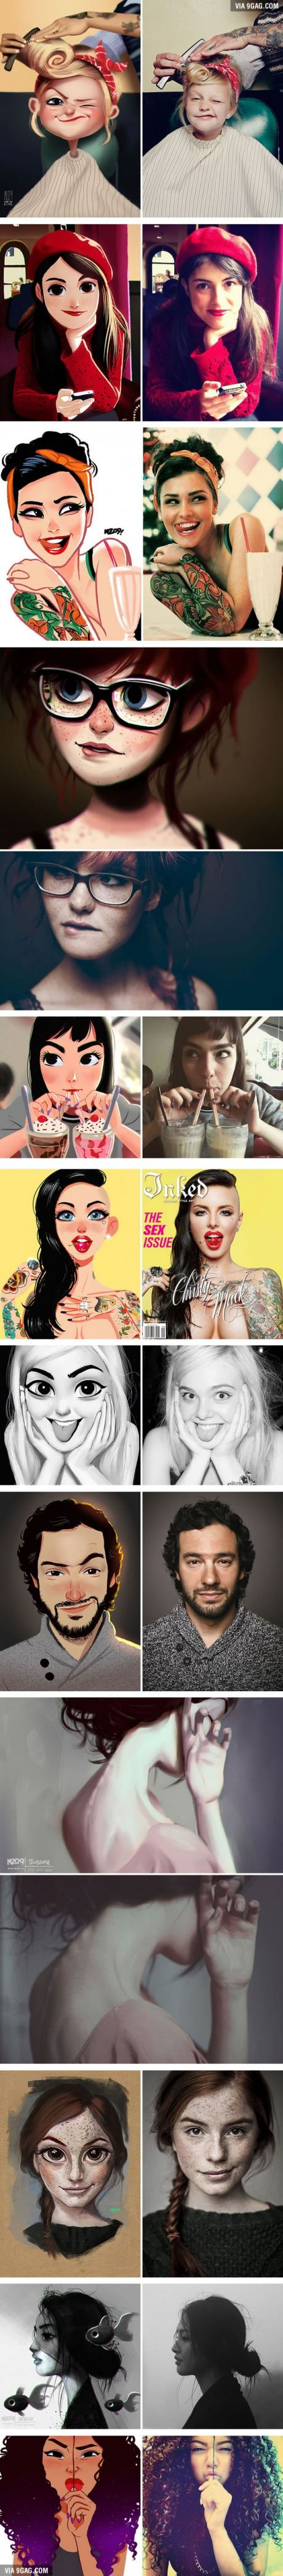 Artist Turns Photos Of Random People Into Fun Illustrations (By Julio Cesar)